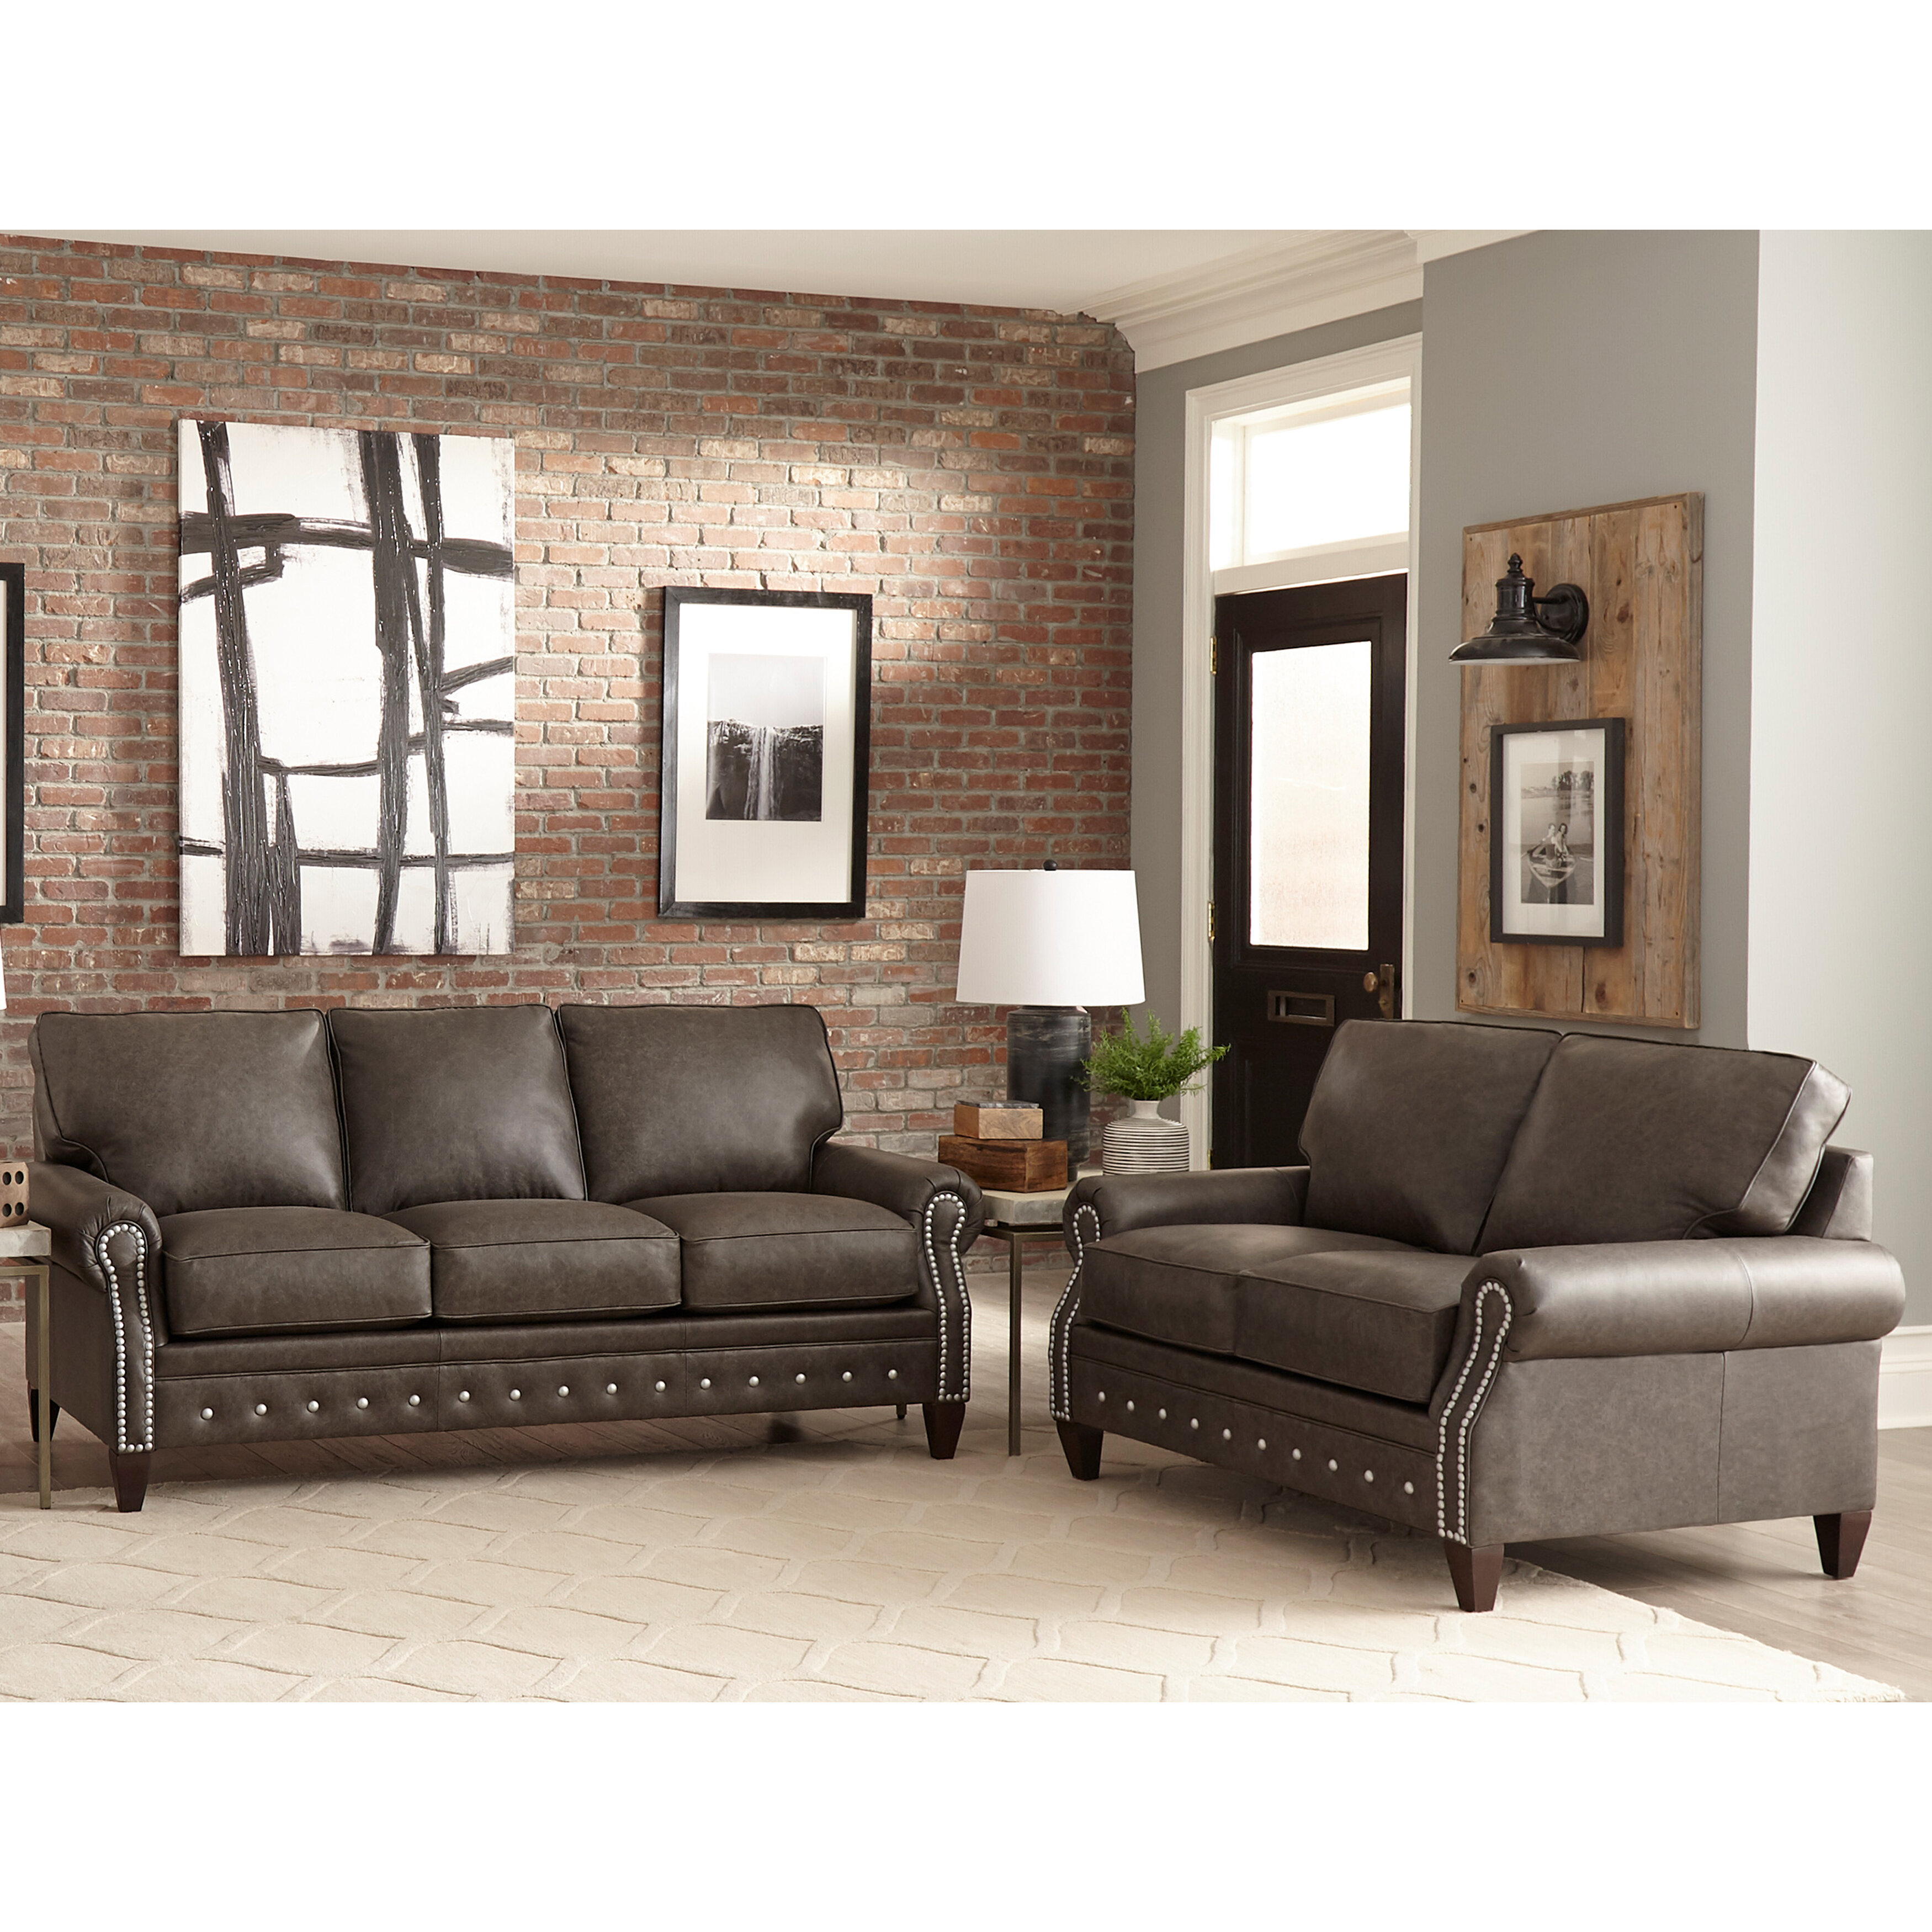 Jacey 5 Piece Leather Living Room Set